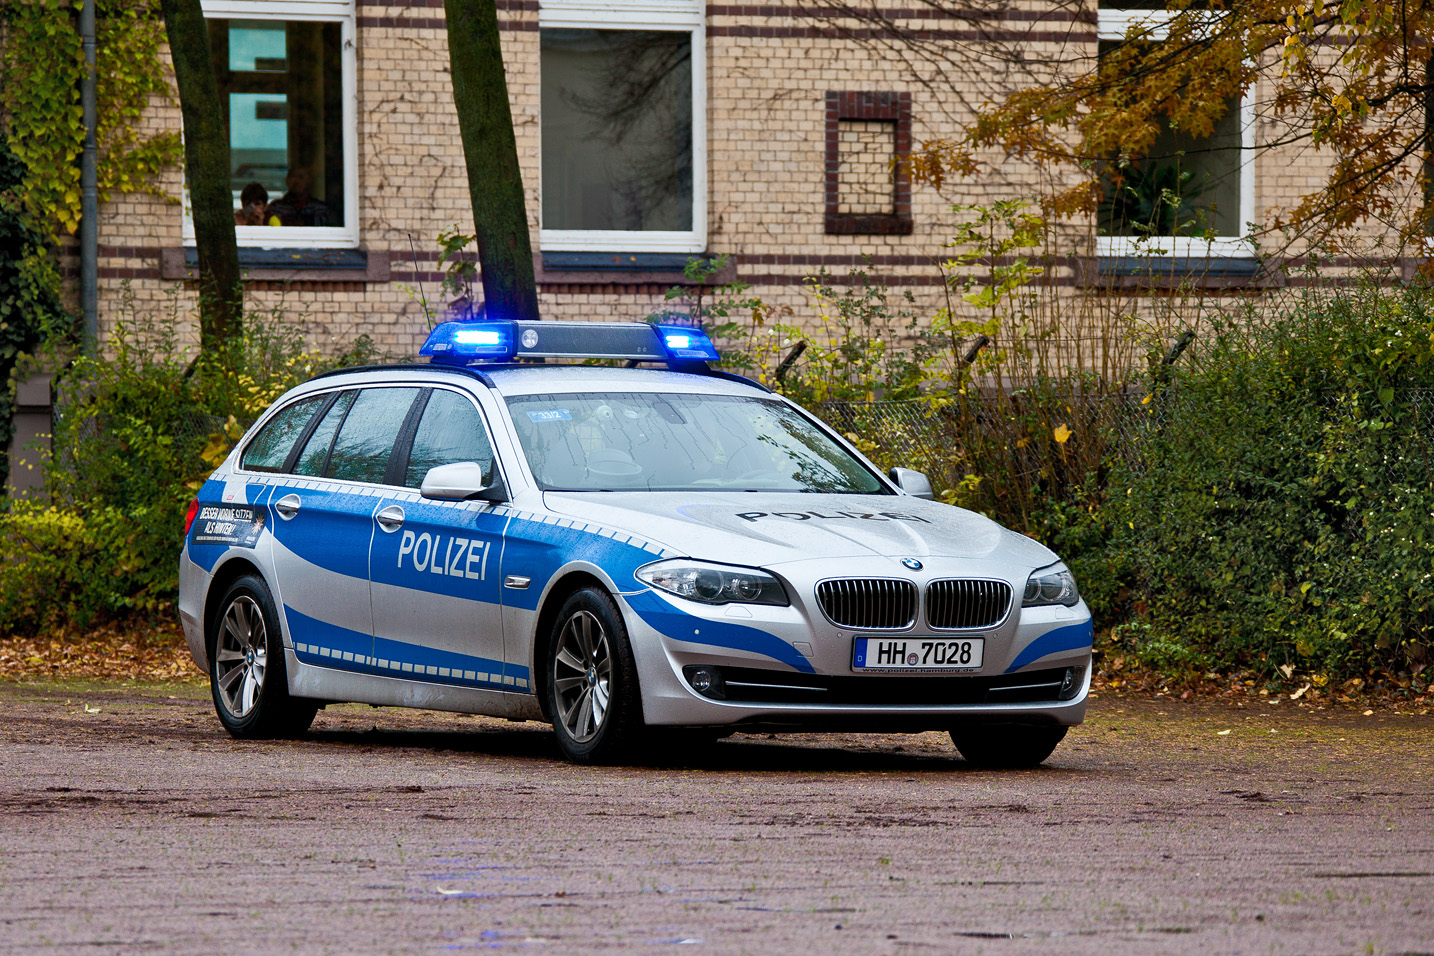 5er bmw der polizei hamburg zurzeit stationiert am pk33 foto bild autos zweir der. Black Bedroom Furniture Sets. Home Design Ideas